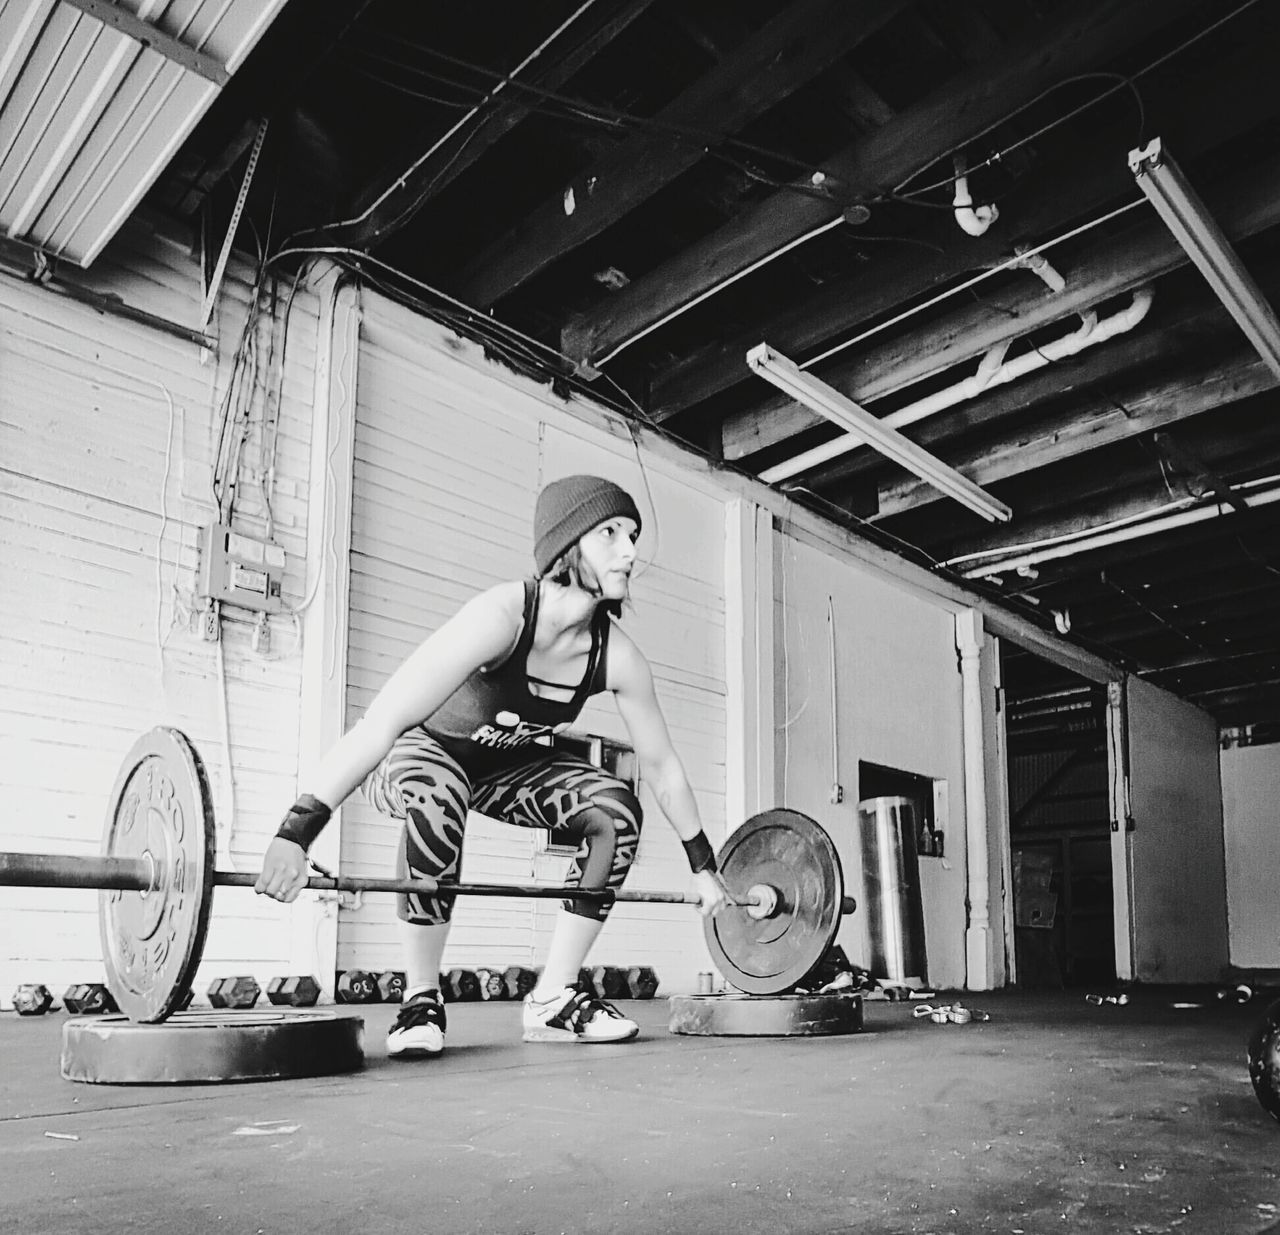 Adults Only Young Adult Adult Young Women Indoors  People Weightlifting One Person Weightlifter Snatches one person Only Men Sports Venue Day Headwear Desaturated